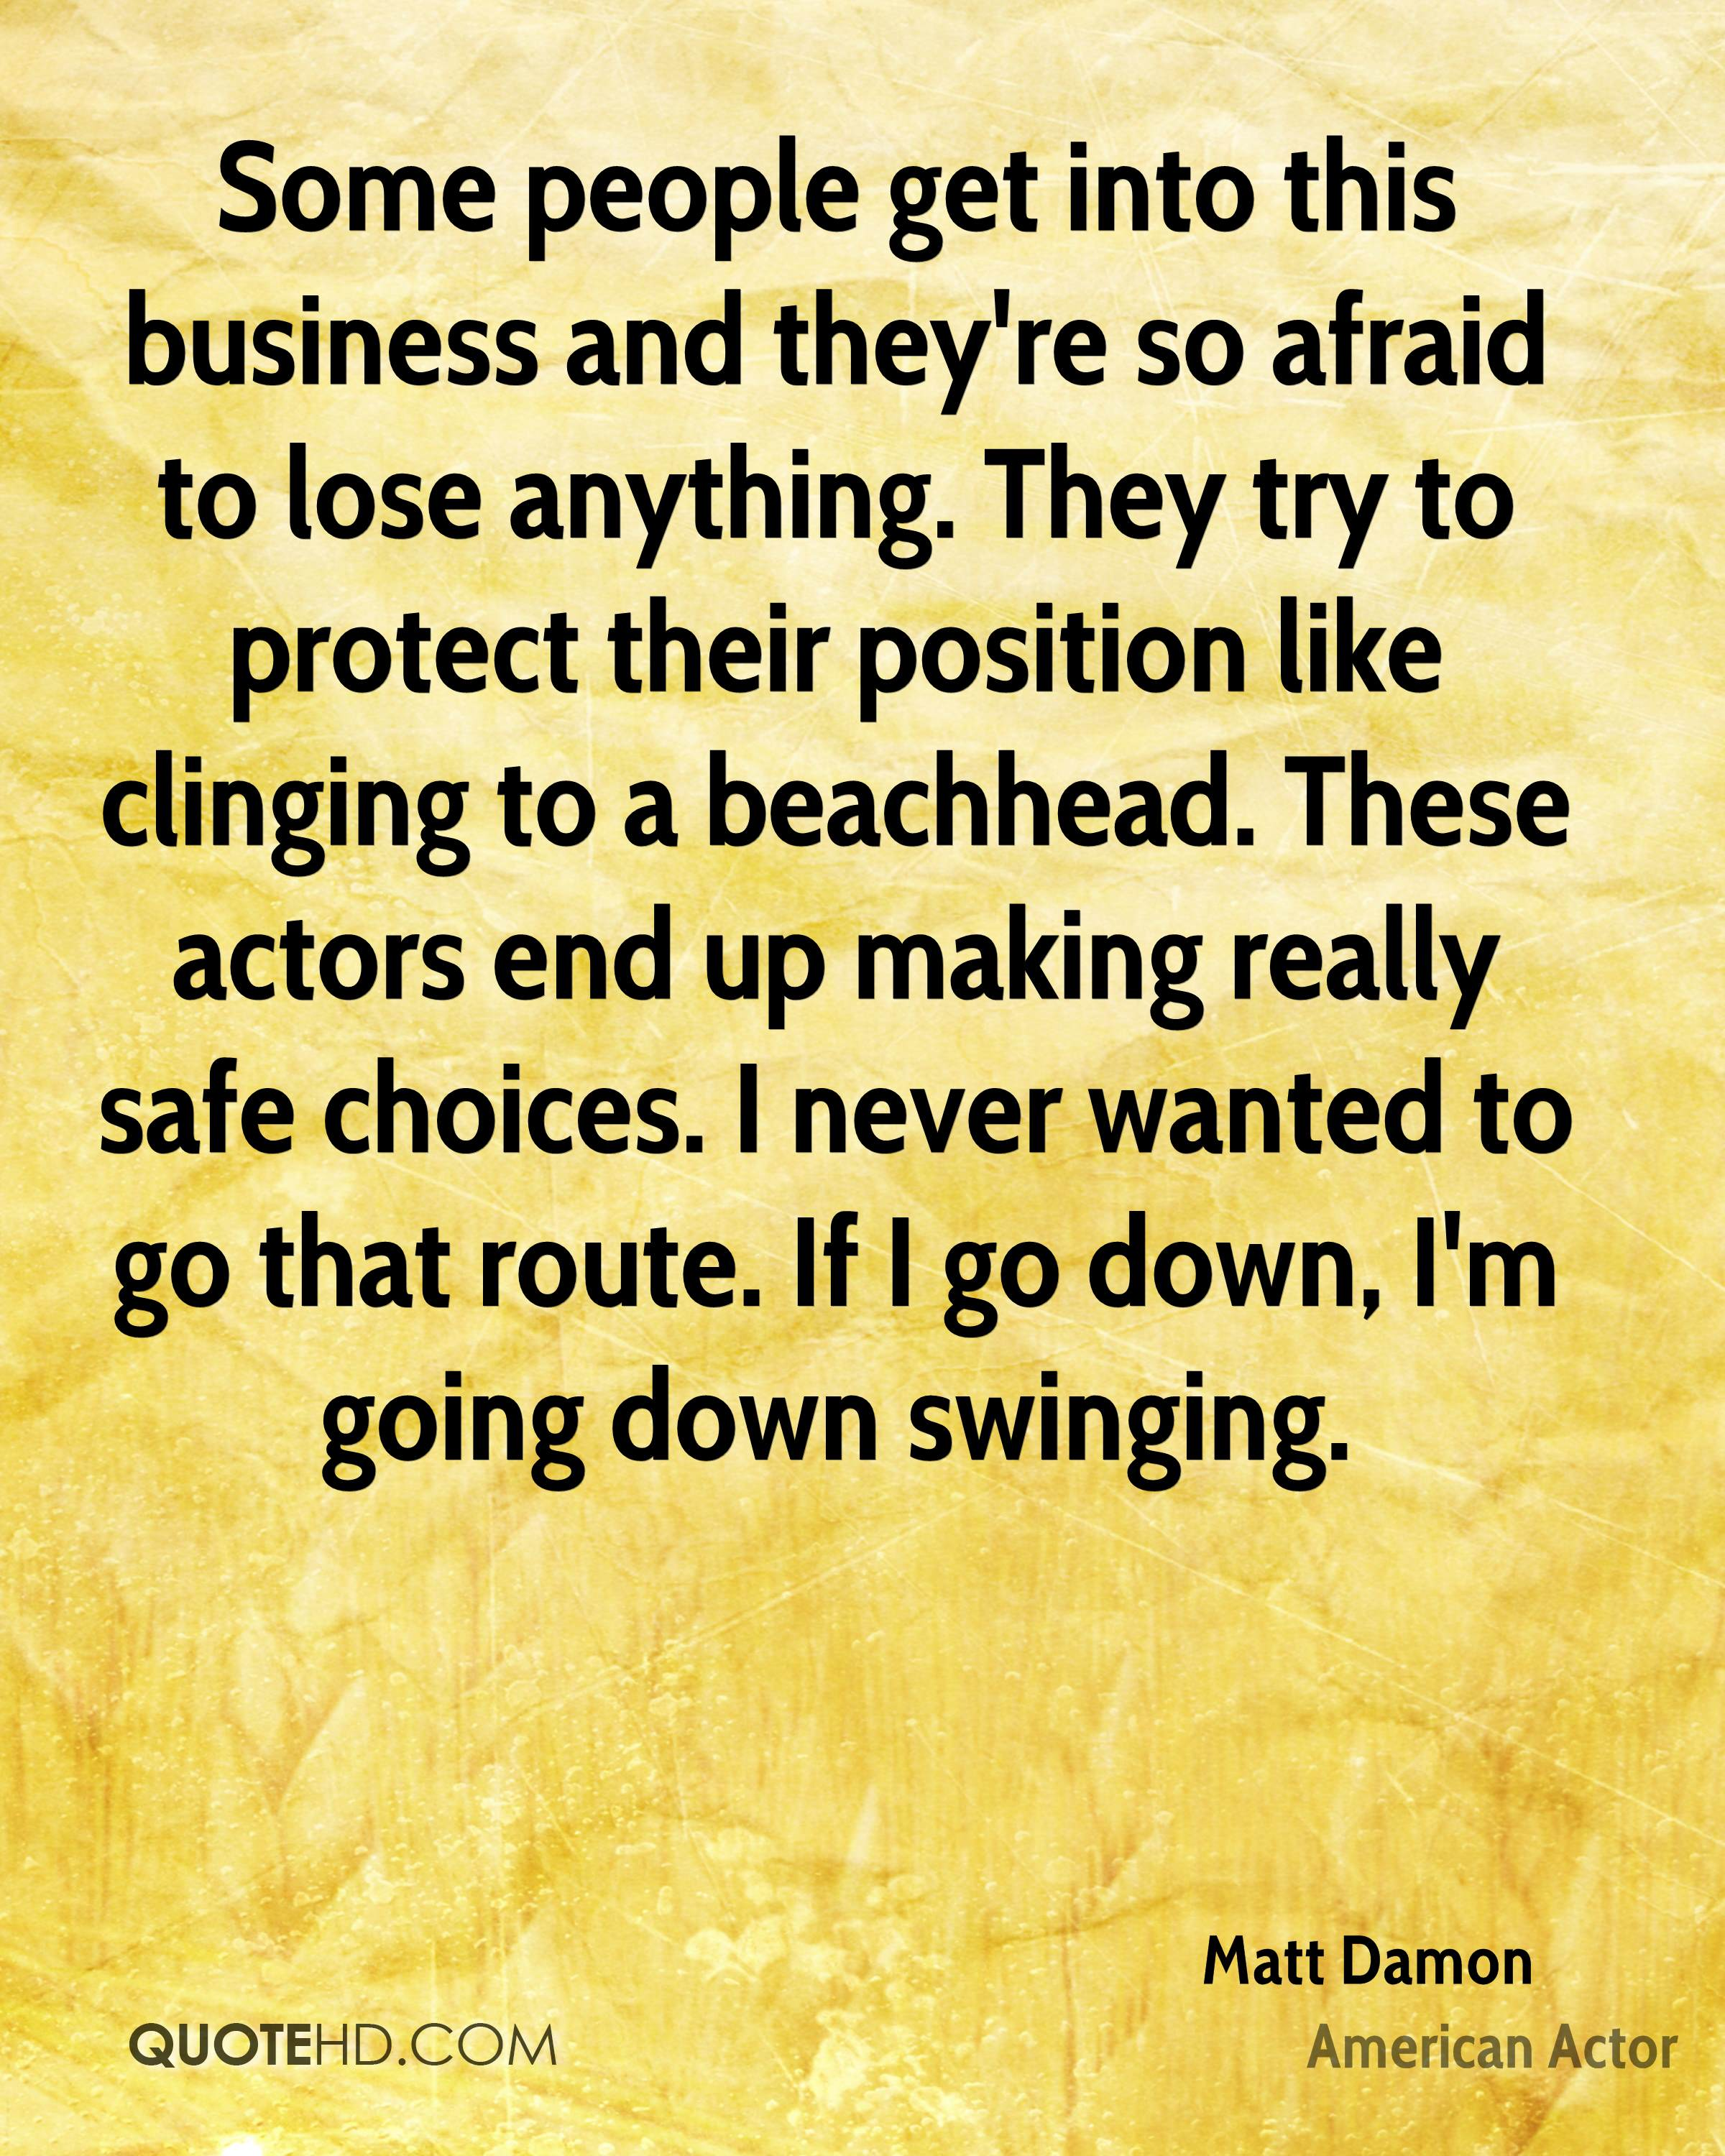 Some people get into this business and they're so afraid to lose anything. They try to protect their position like clinging to a beachhead. These actors end up making really safe choices. I never wanted to go that route. If I go down, I'm going down swinging.